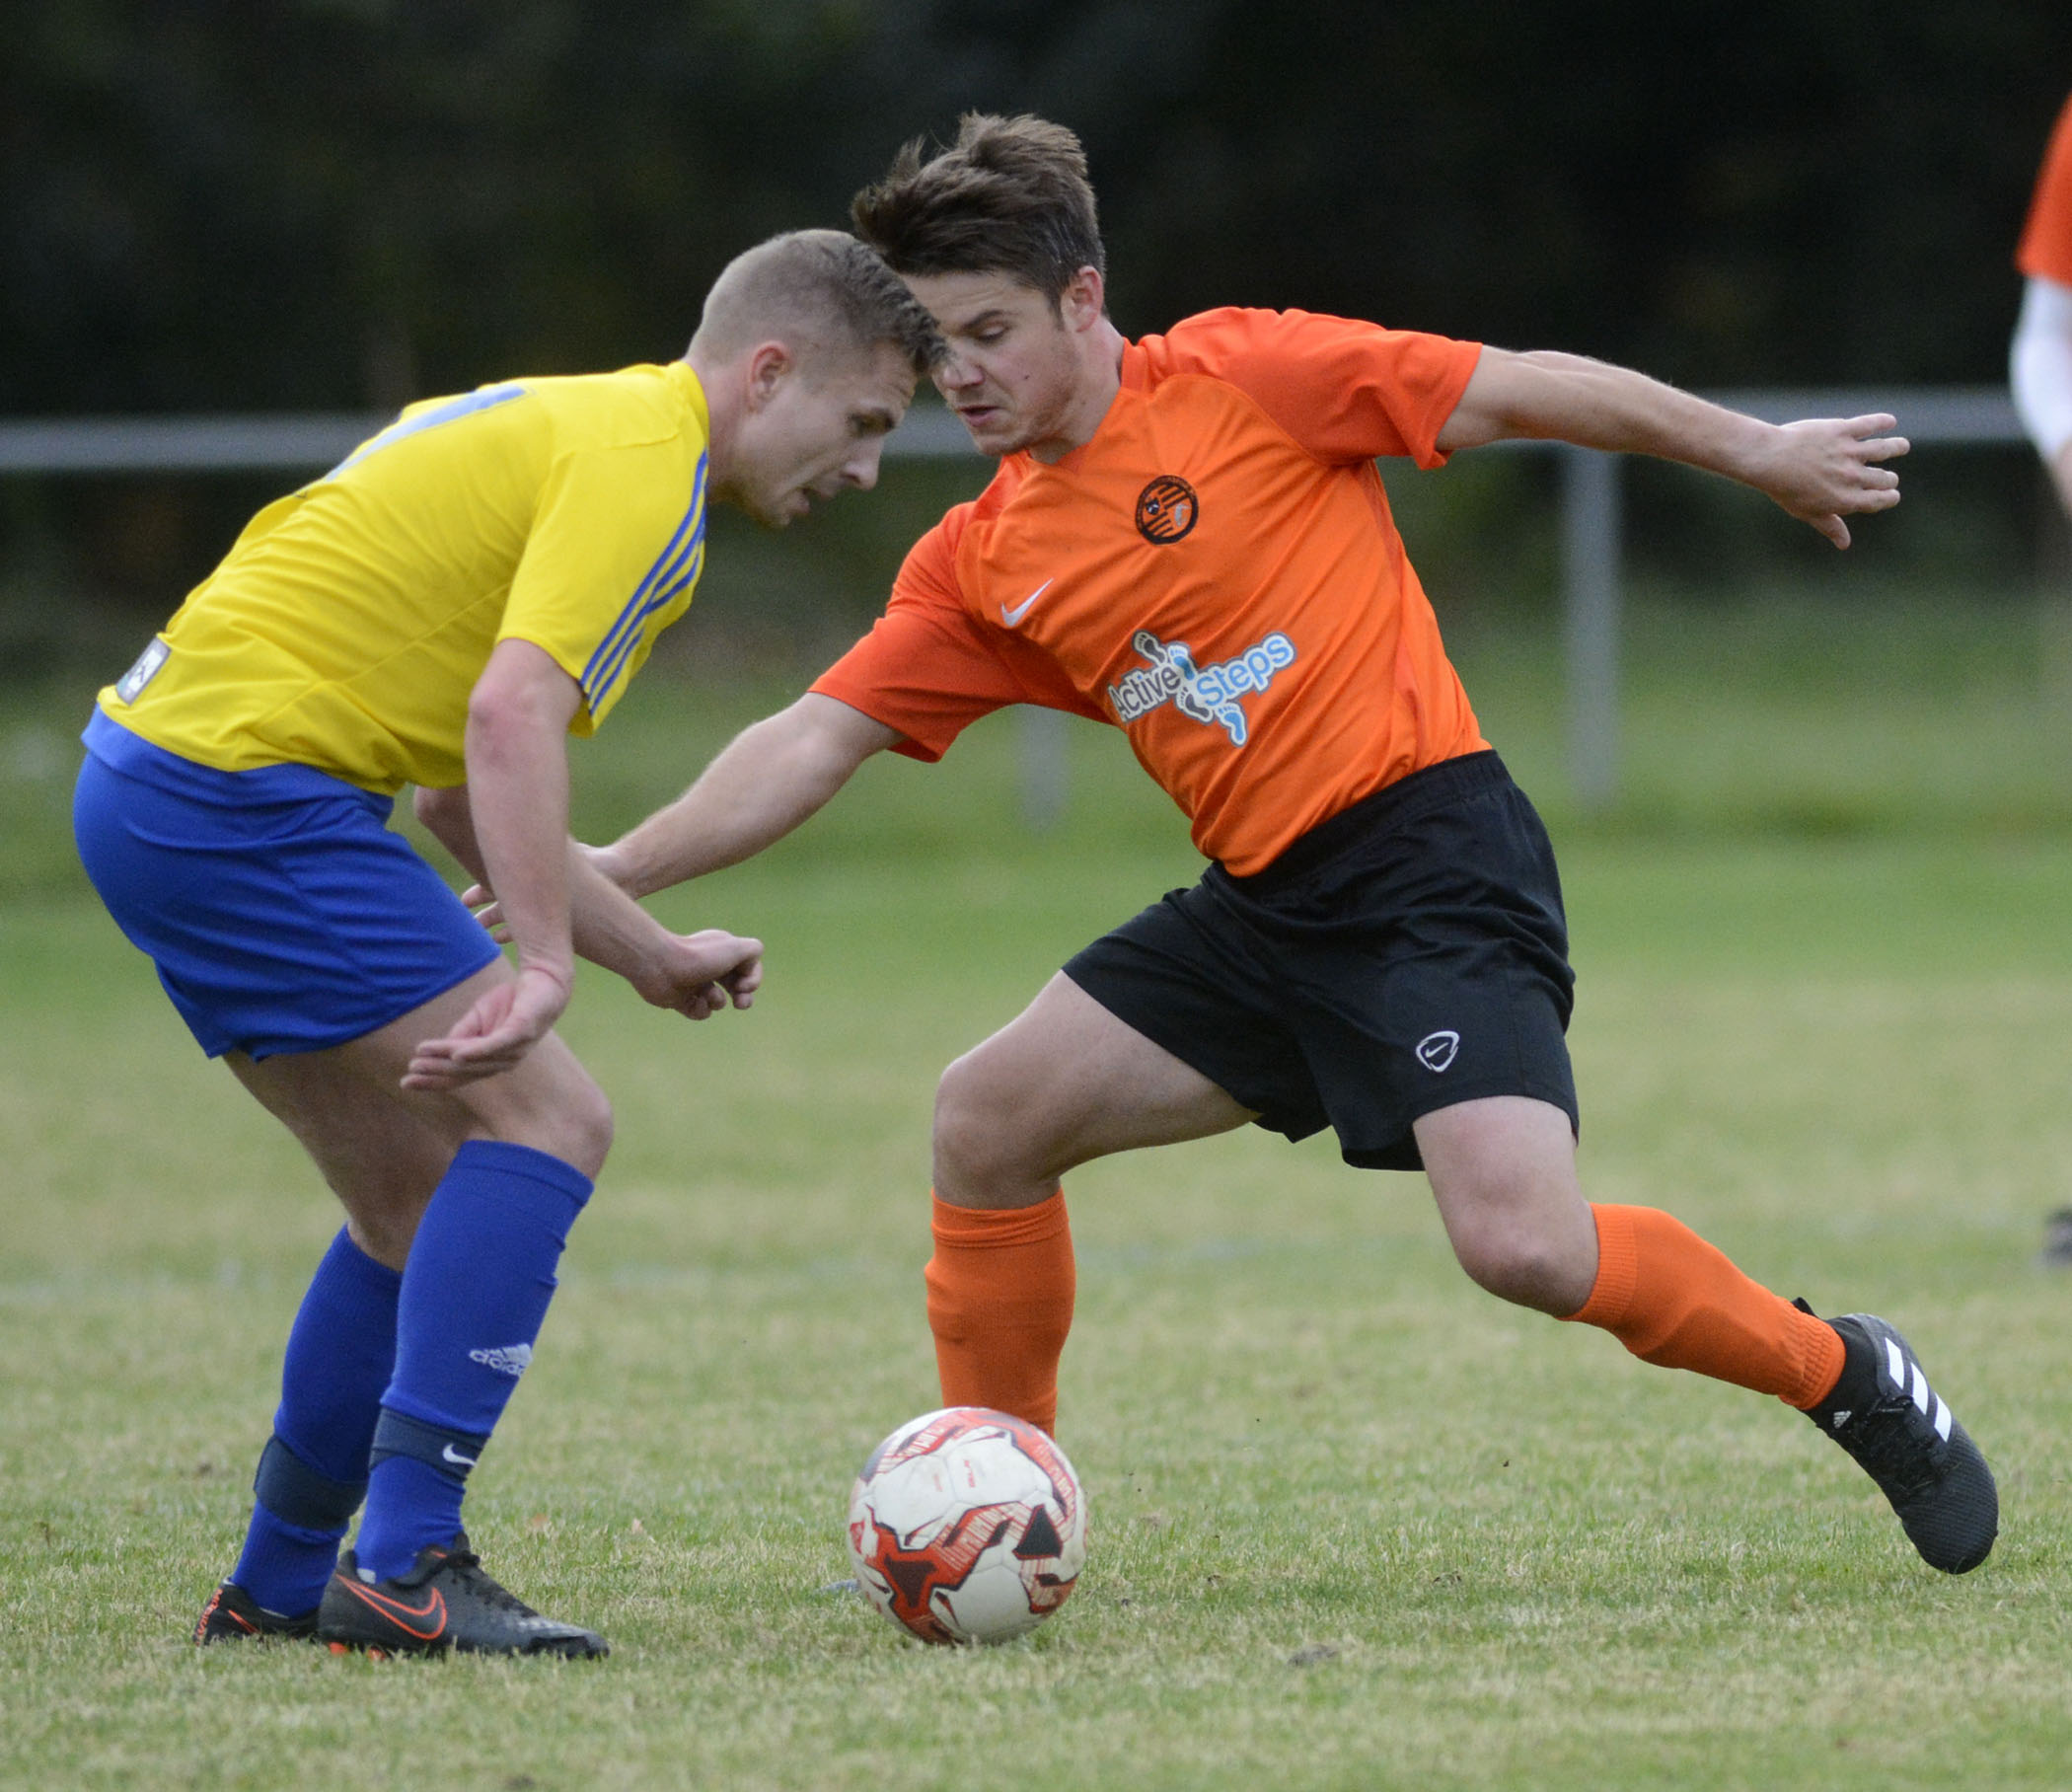 Crowthorne Inn (yellow) eased past Wokingham & Emmbrook 4-1